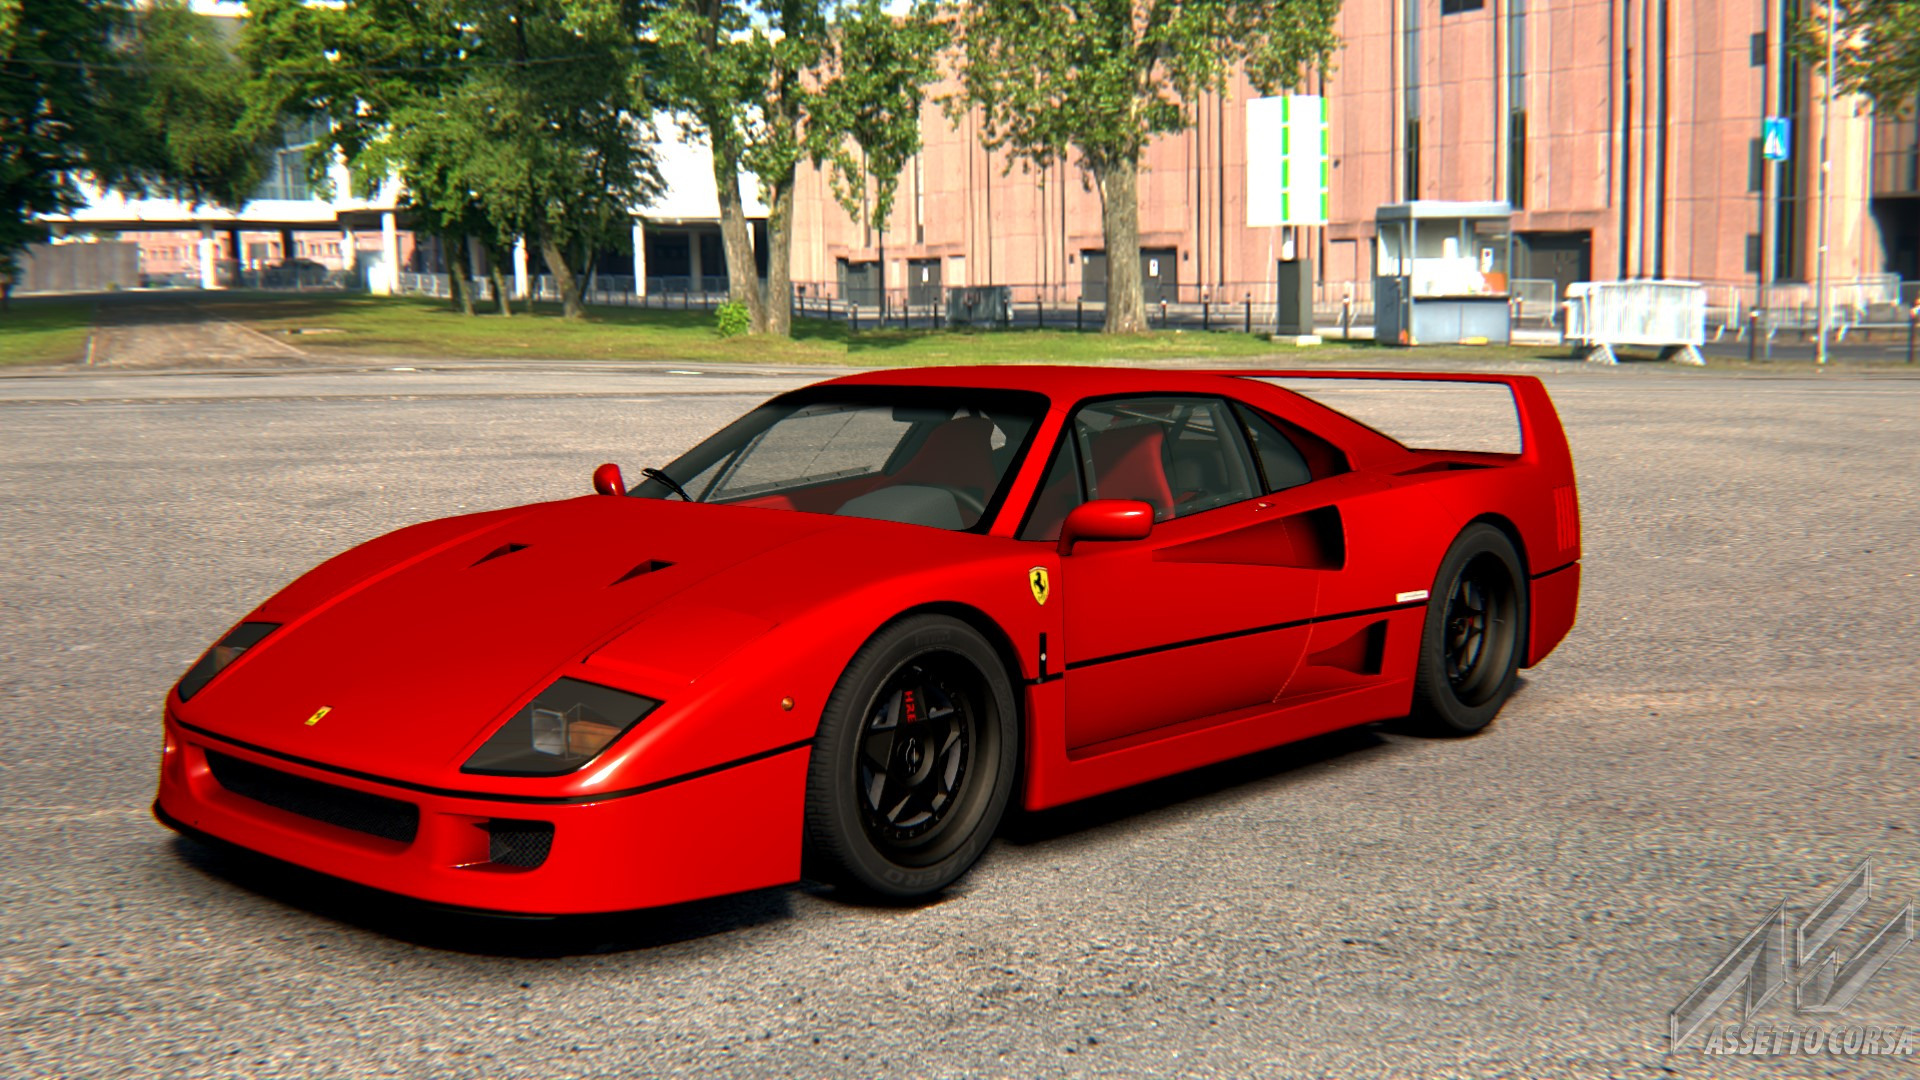 Showroom_ferrari_f40_s3_27-3-2015-13-43-45.jpg